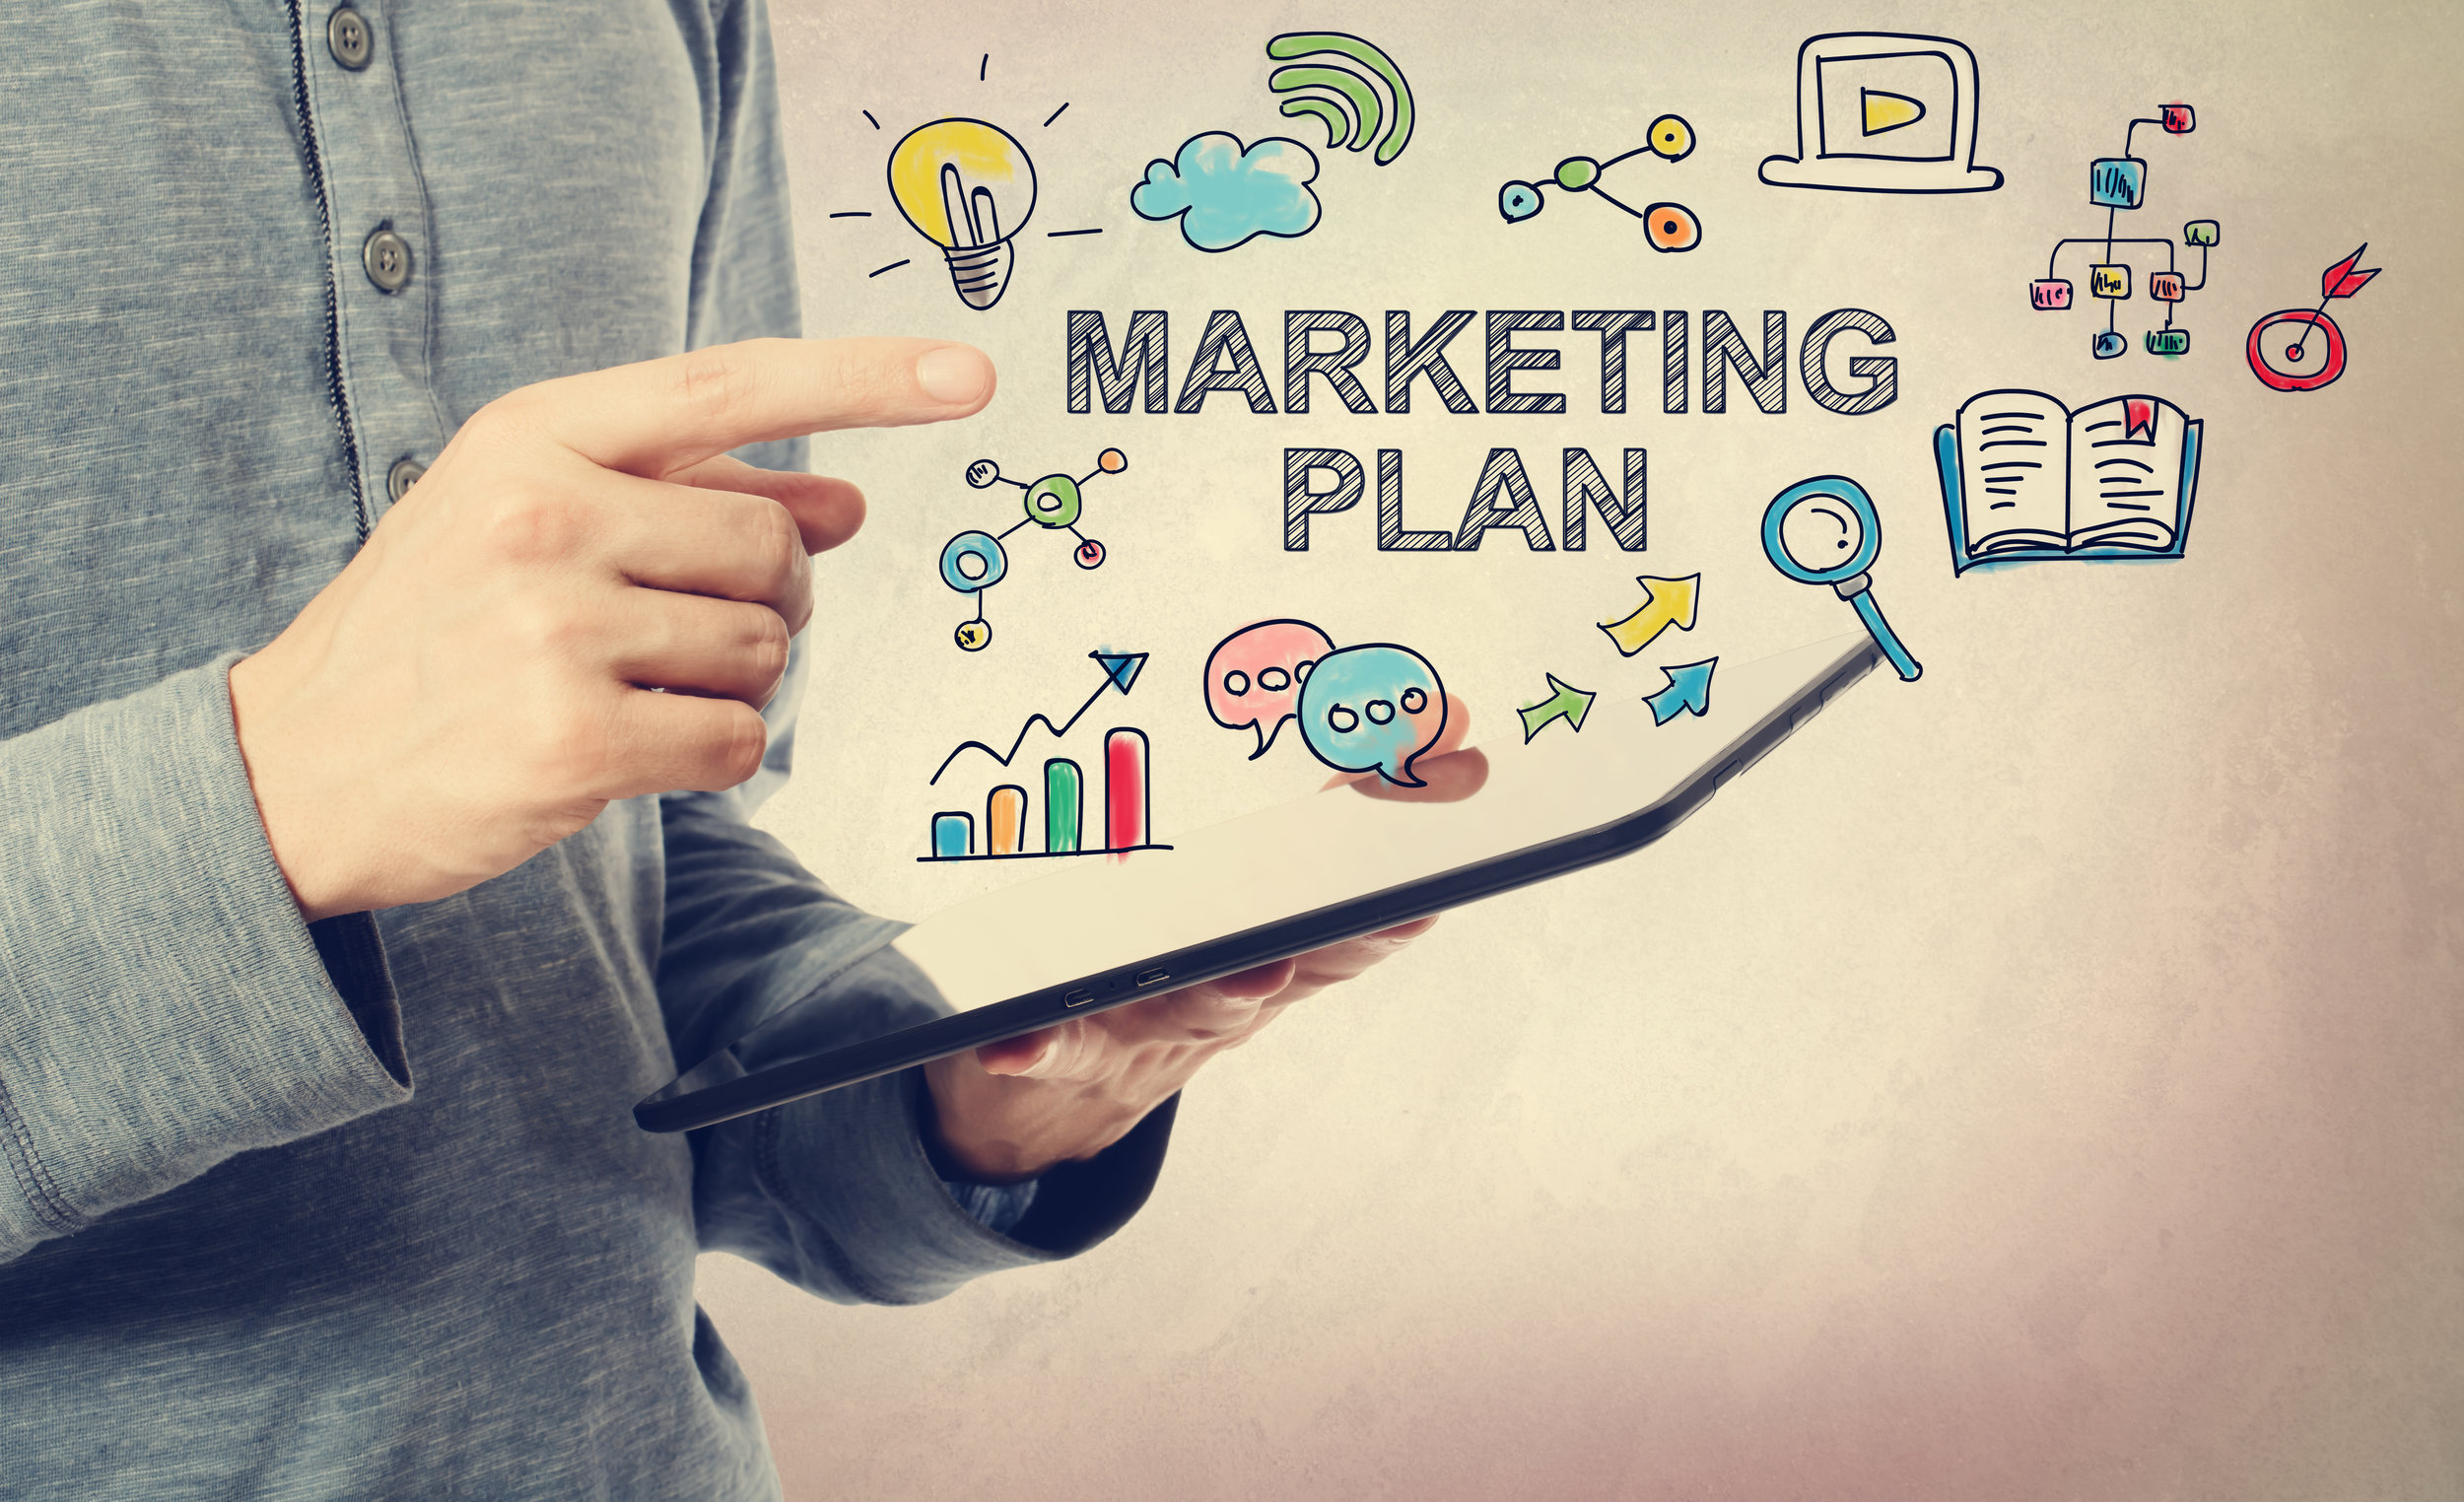 marketing plan tips for small businesses and entrepreneurs